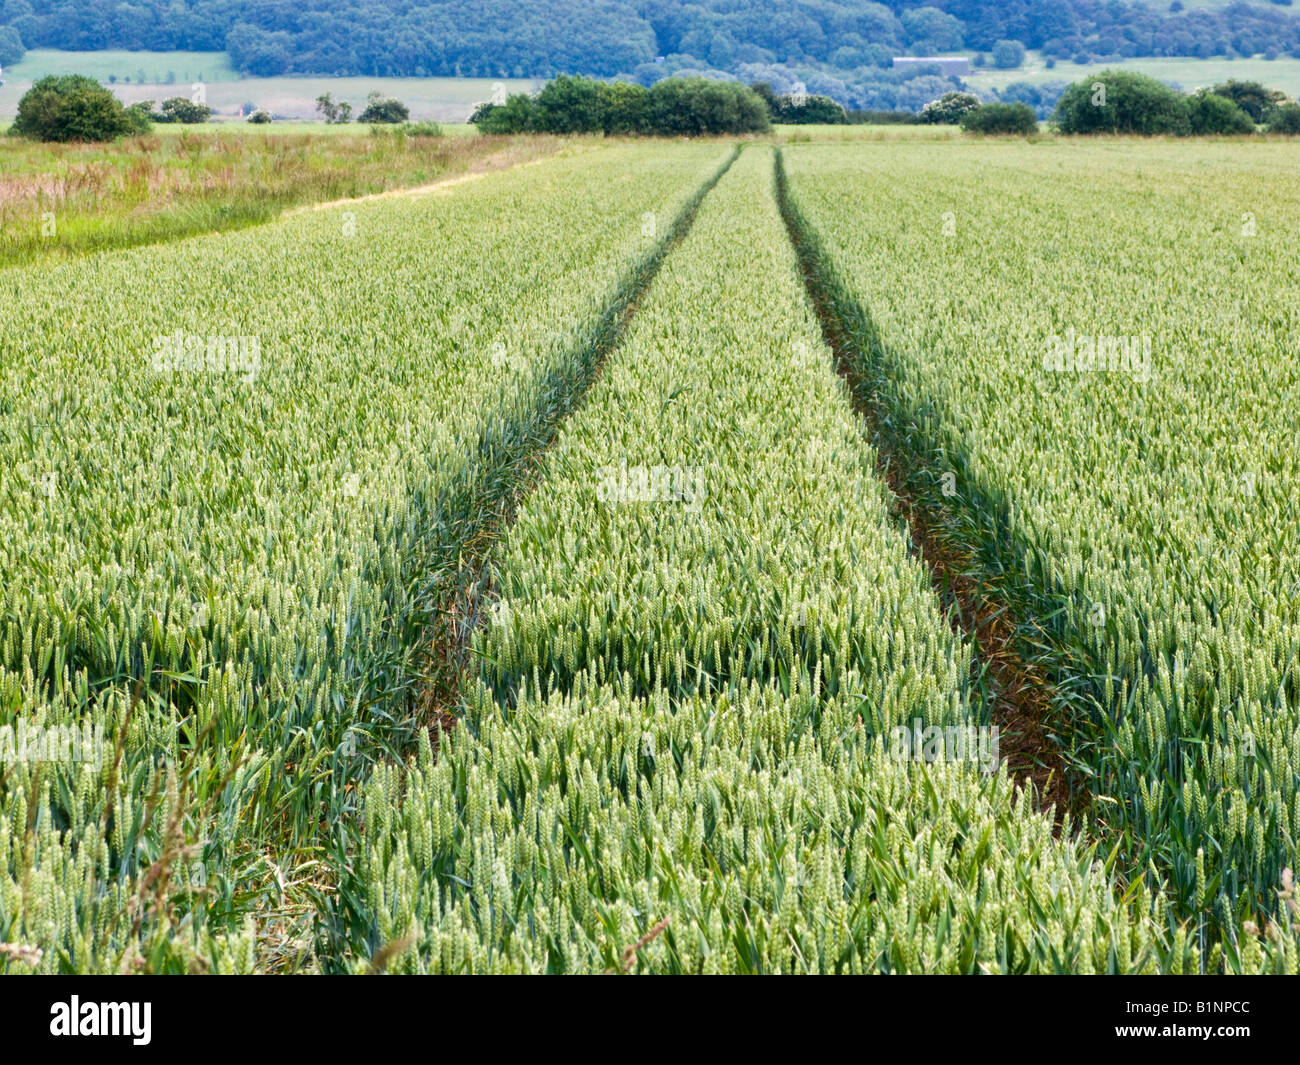 Tractor lines in a wheat field in late spring / early summer, farming UK - Stock Image